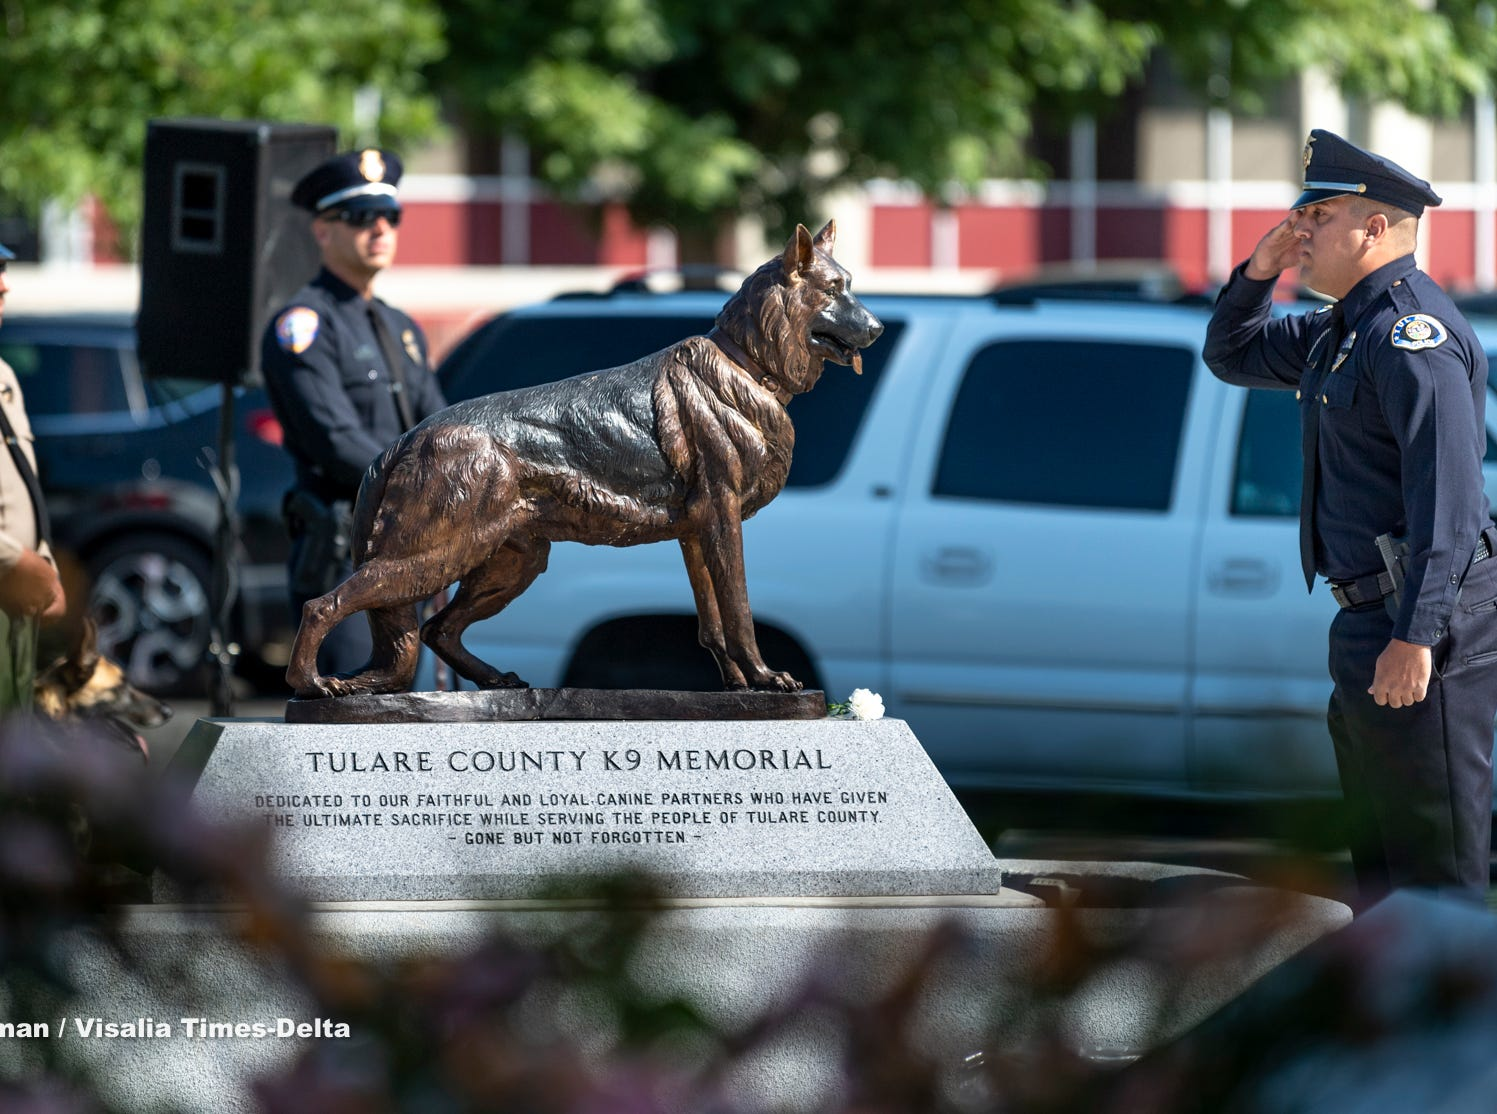 Tulare Police officer Ryan Garcia salutes at the memorial for his partner K-9 Bane during the Tulare County Peace Officer Memorial Ceremony on Wednesday, May 8, 2019. Bane was killed in the line of duty while defending Garcia late in 2018.